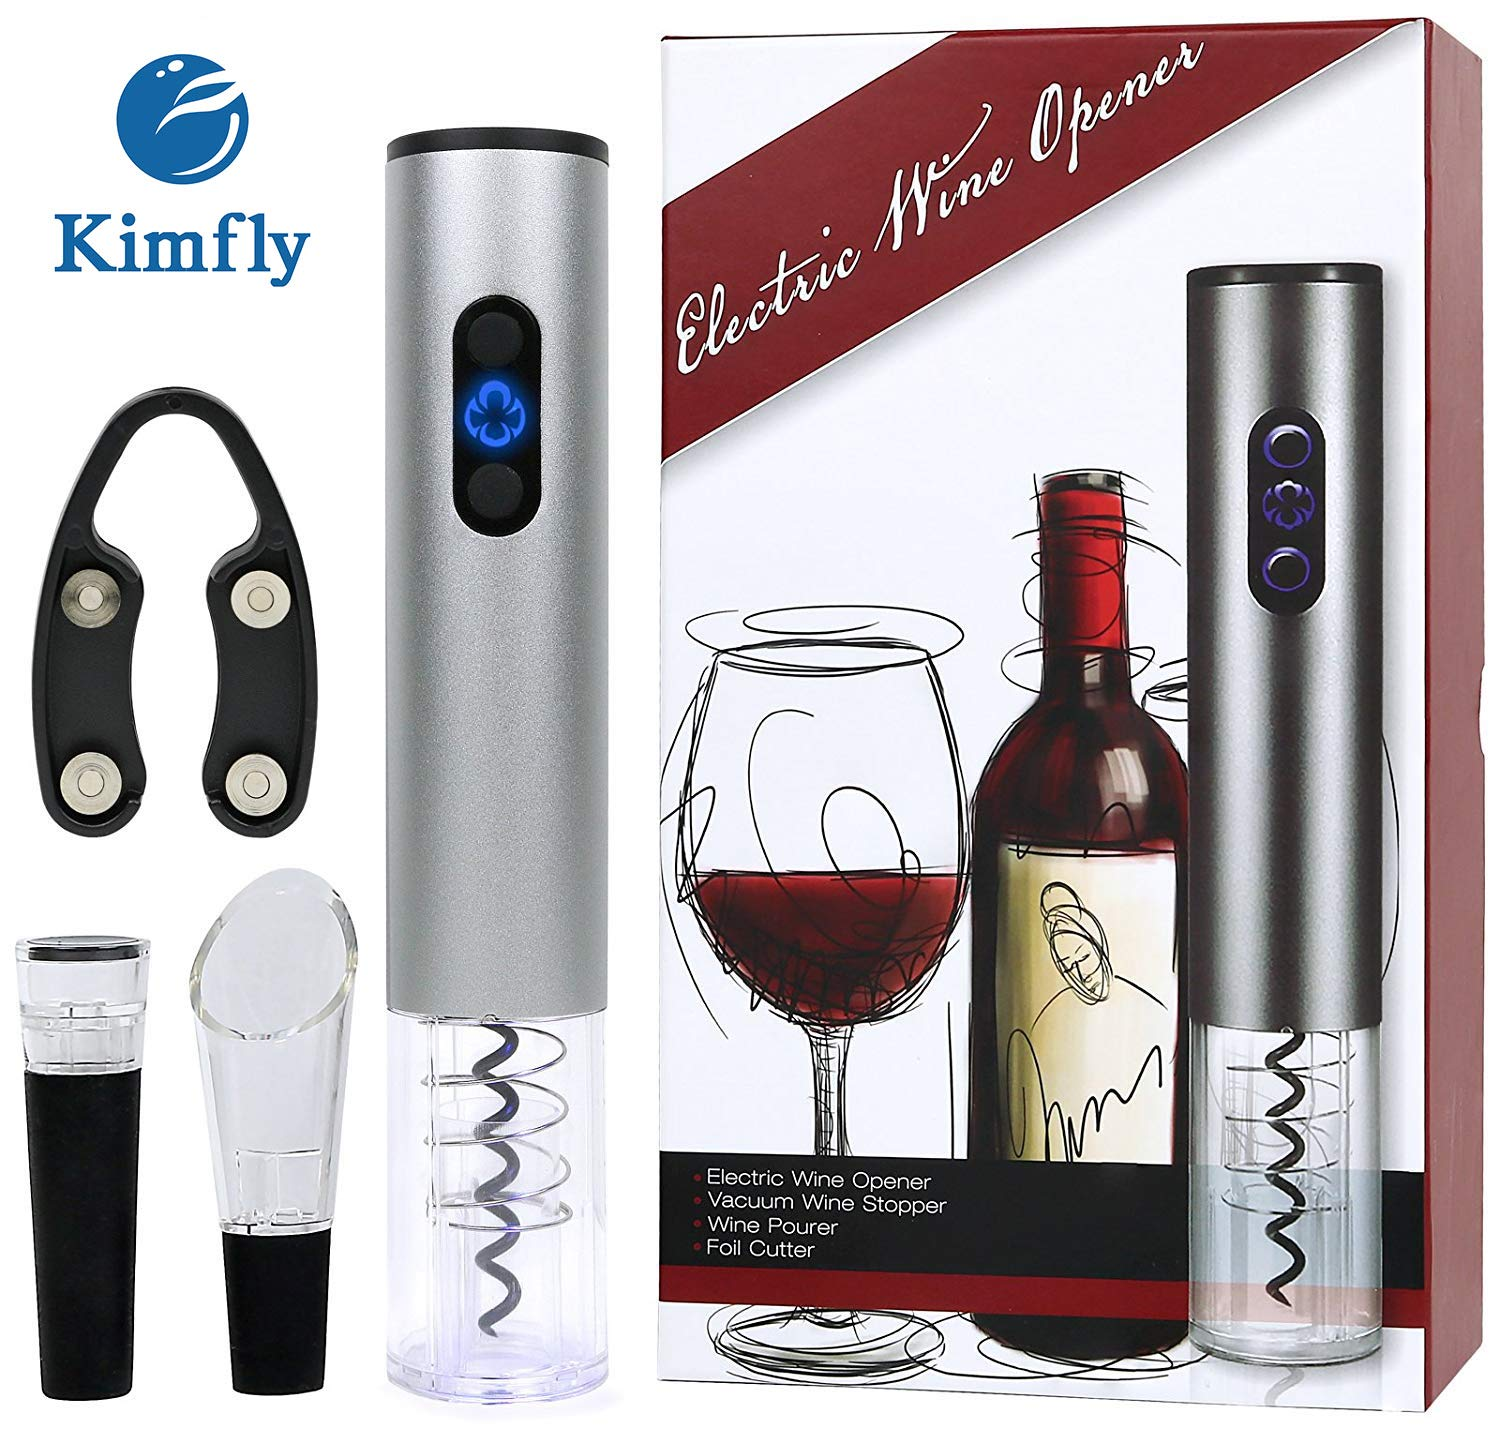 An electric wine opener that makes drinking wine even better